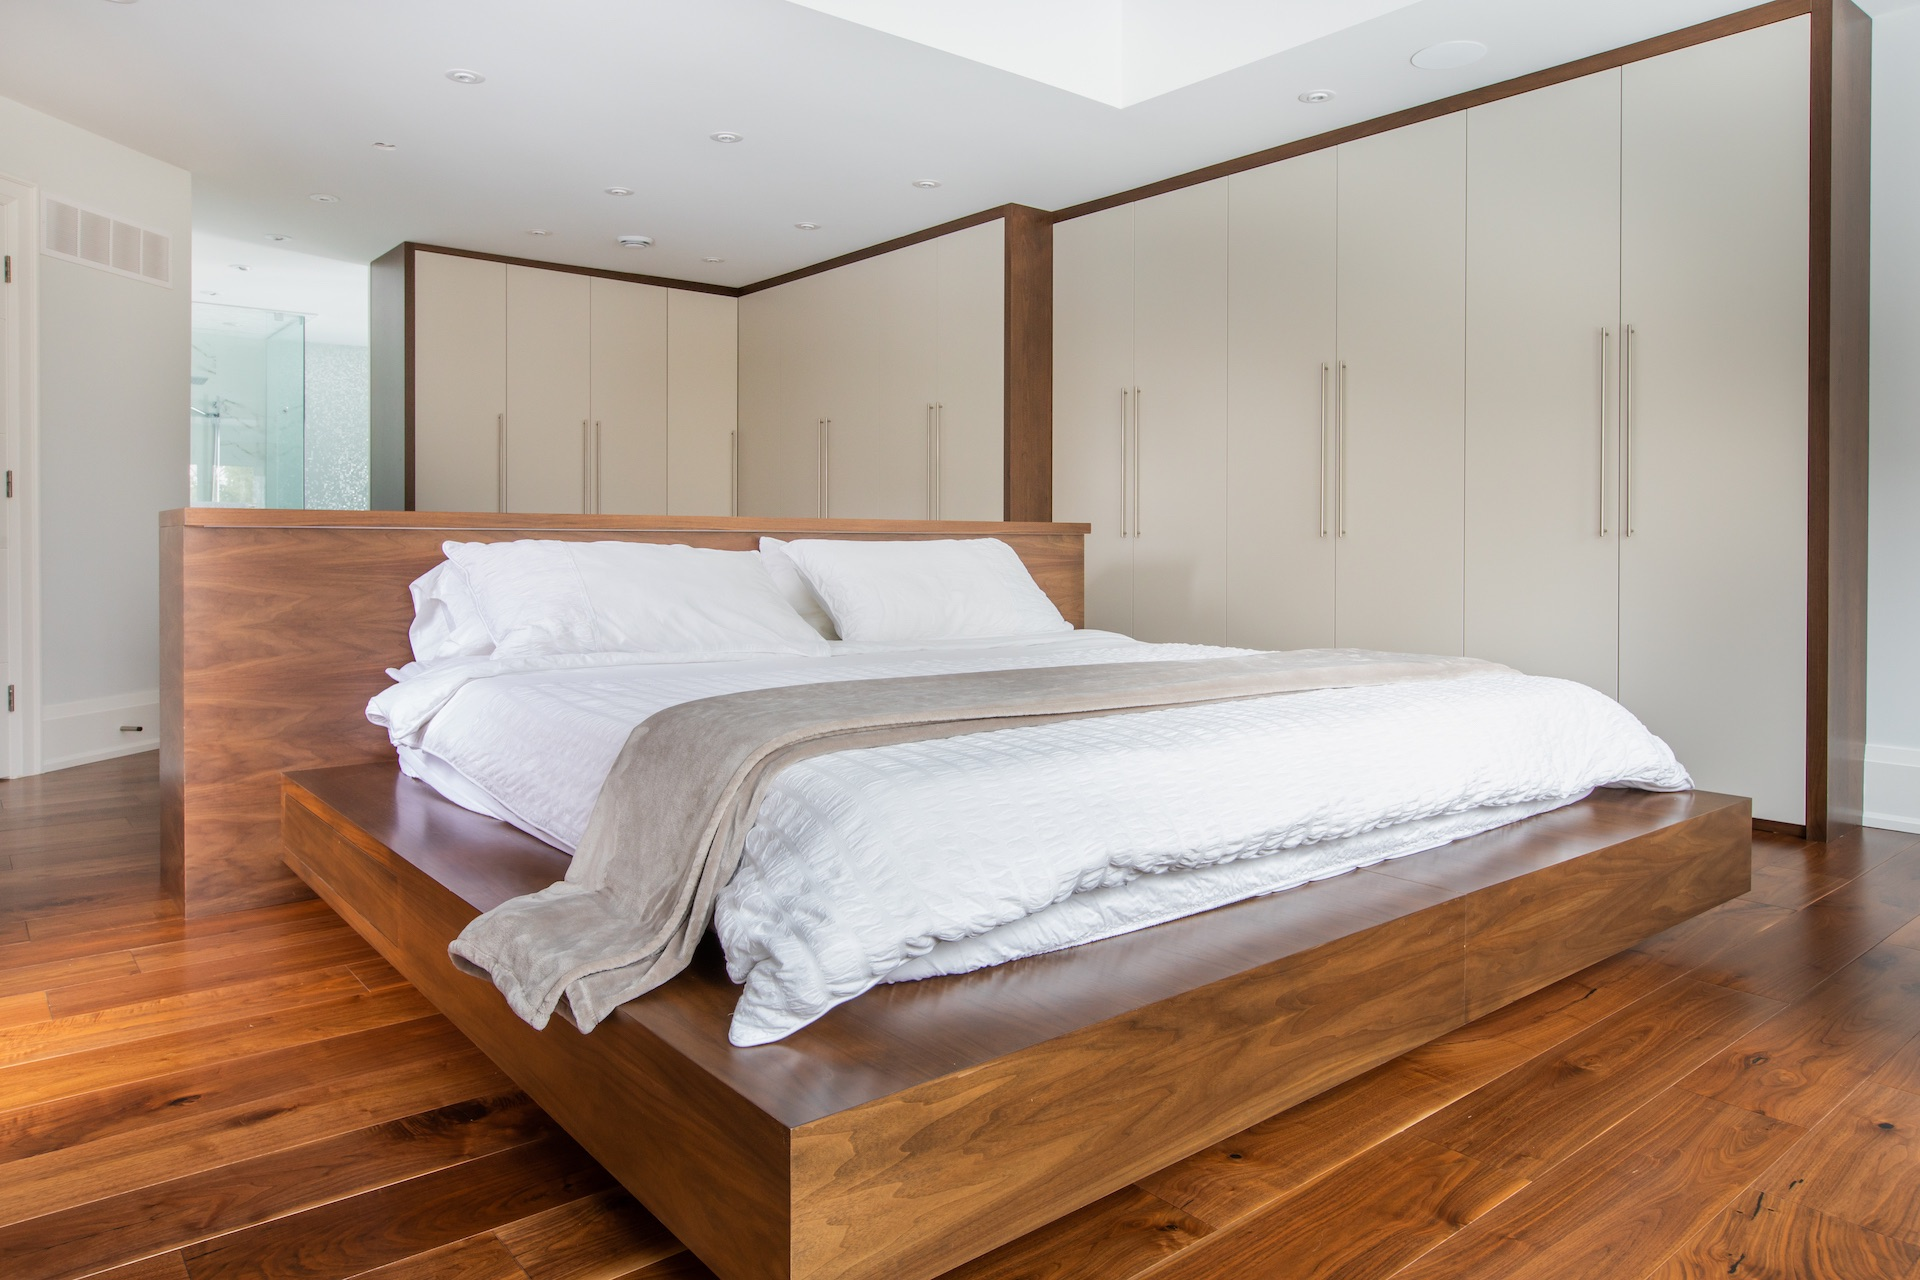 NIICO Wood Bed